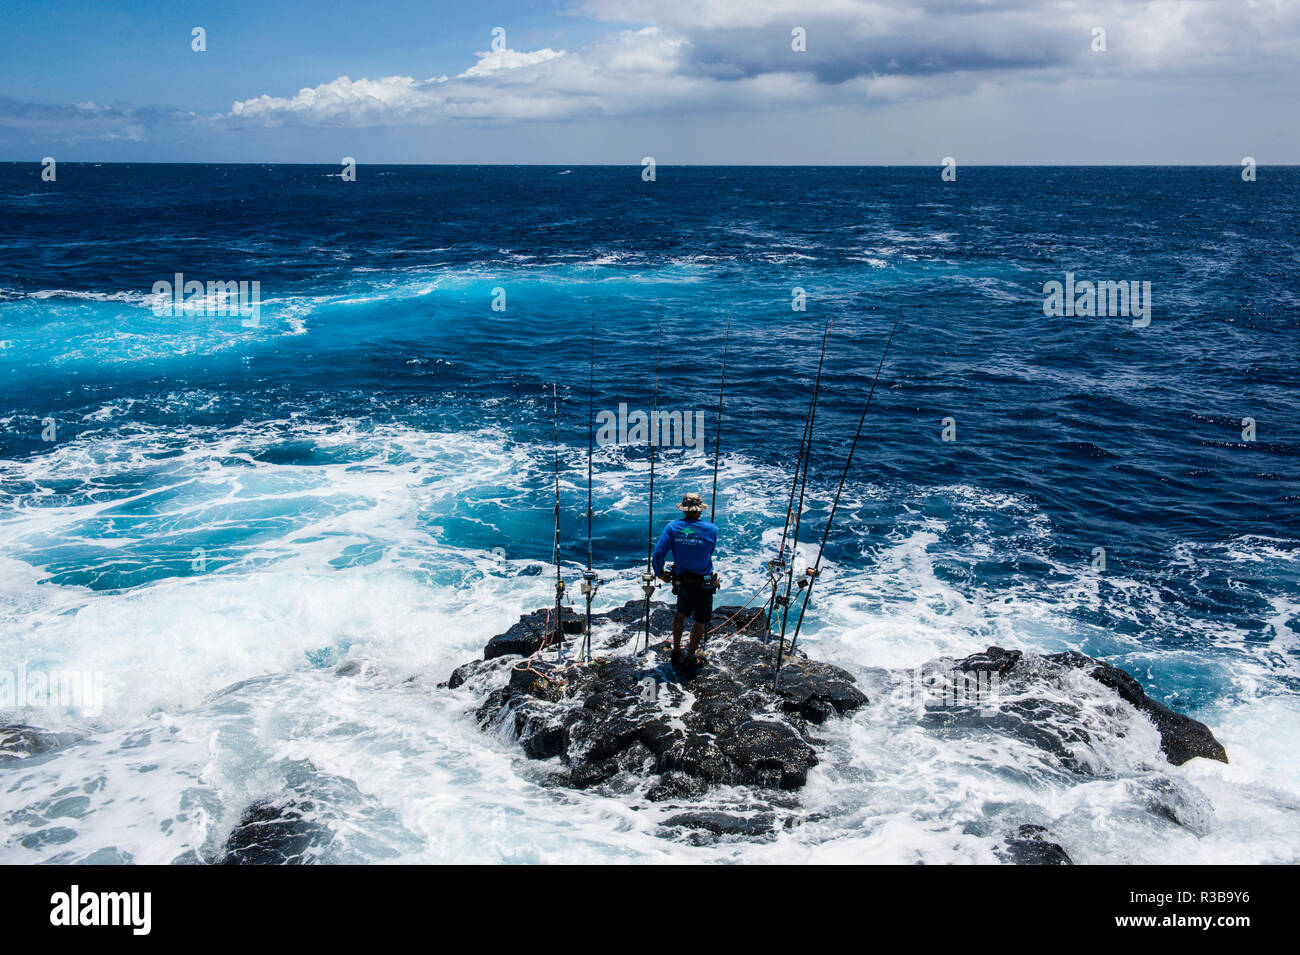 Pêcheur debout sur un rocher dans la mer avec ses tiges de pêche à la ligne, Kalae, South Point, Big Island, Hawaii, USA Photo Stock